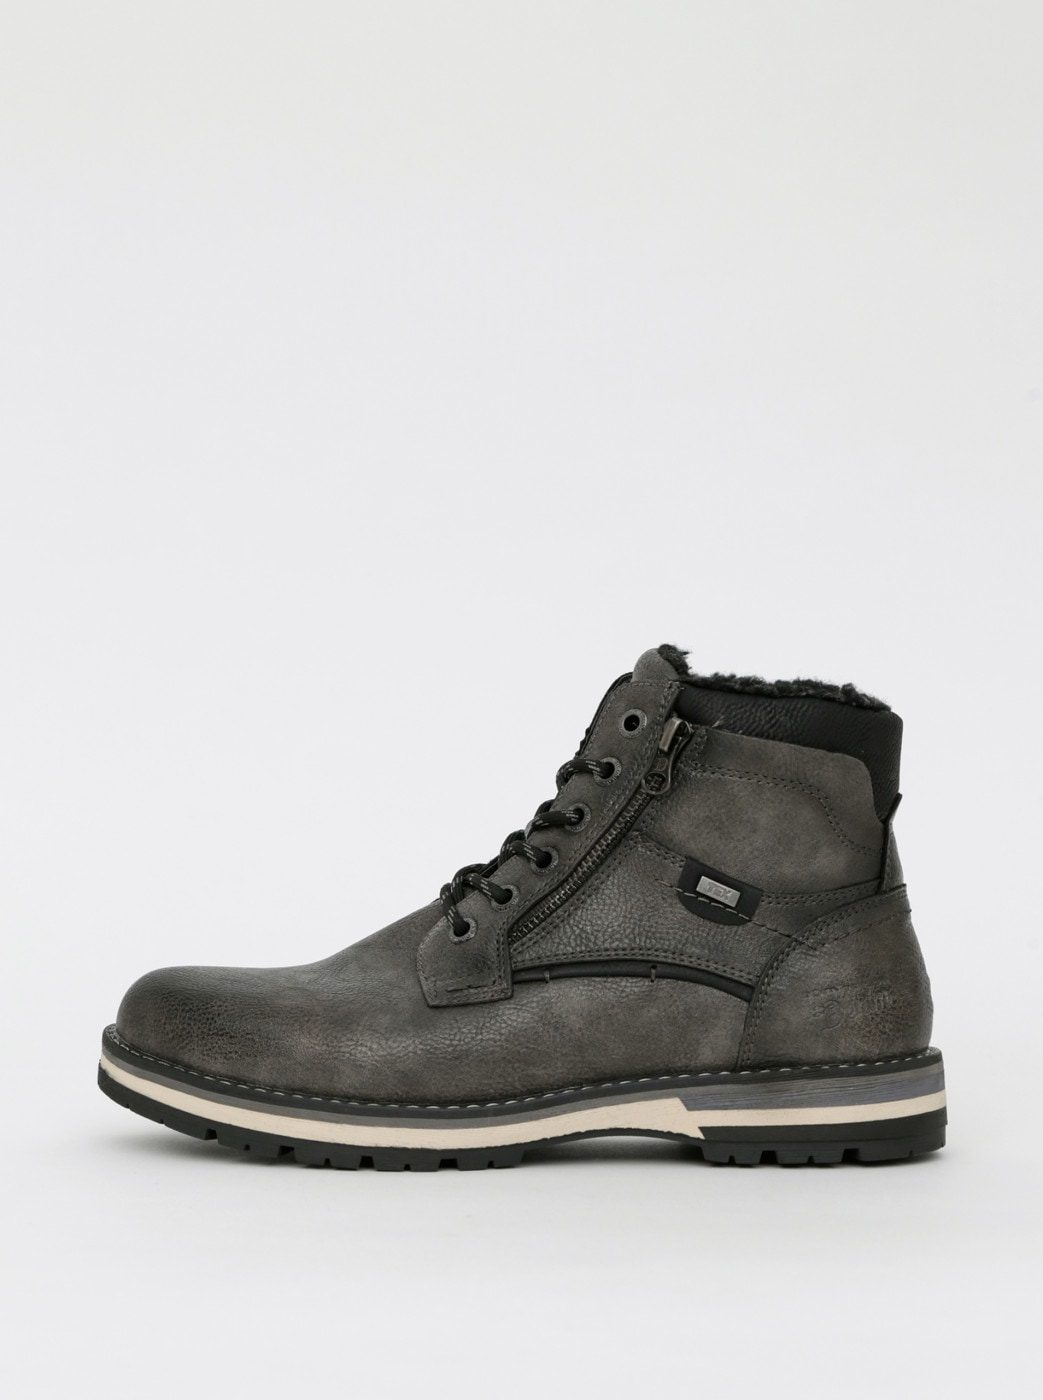 Tom Tailor Grey Men's Ankle Boots